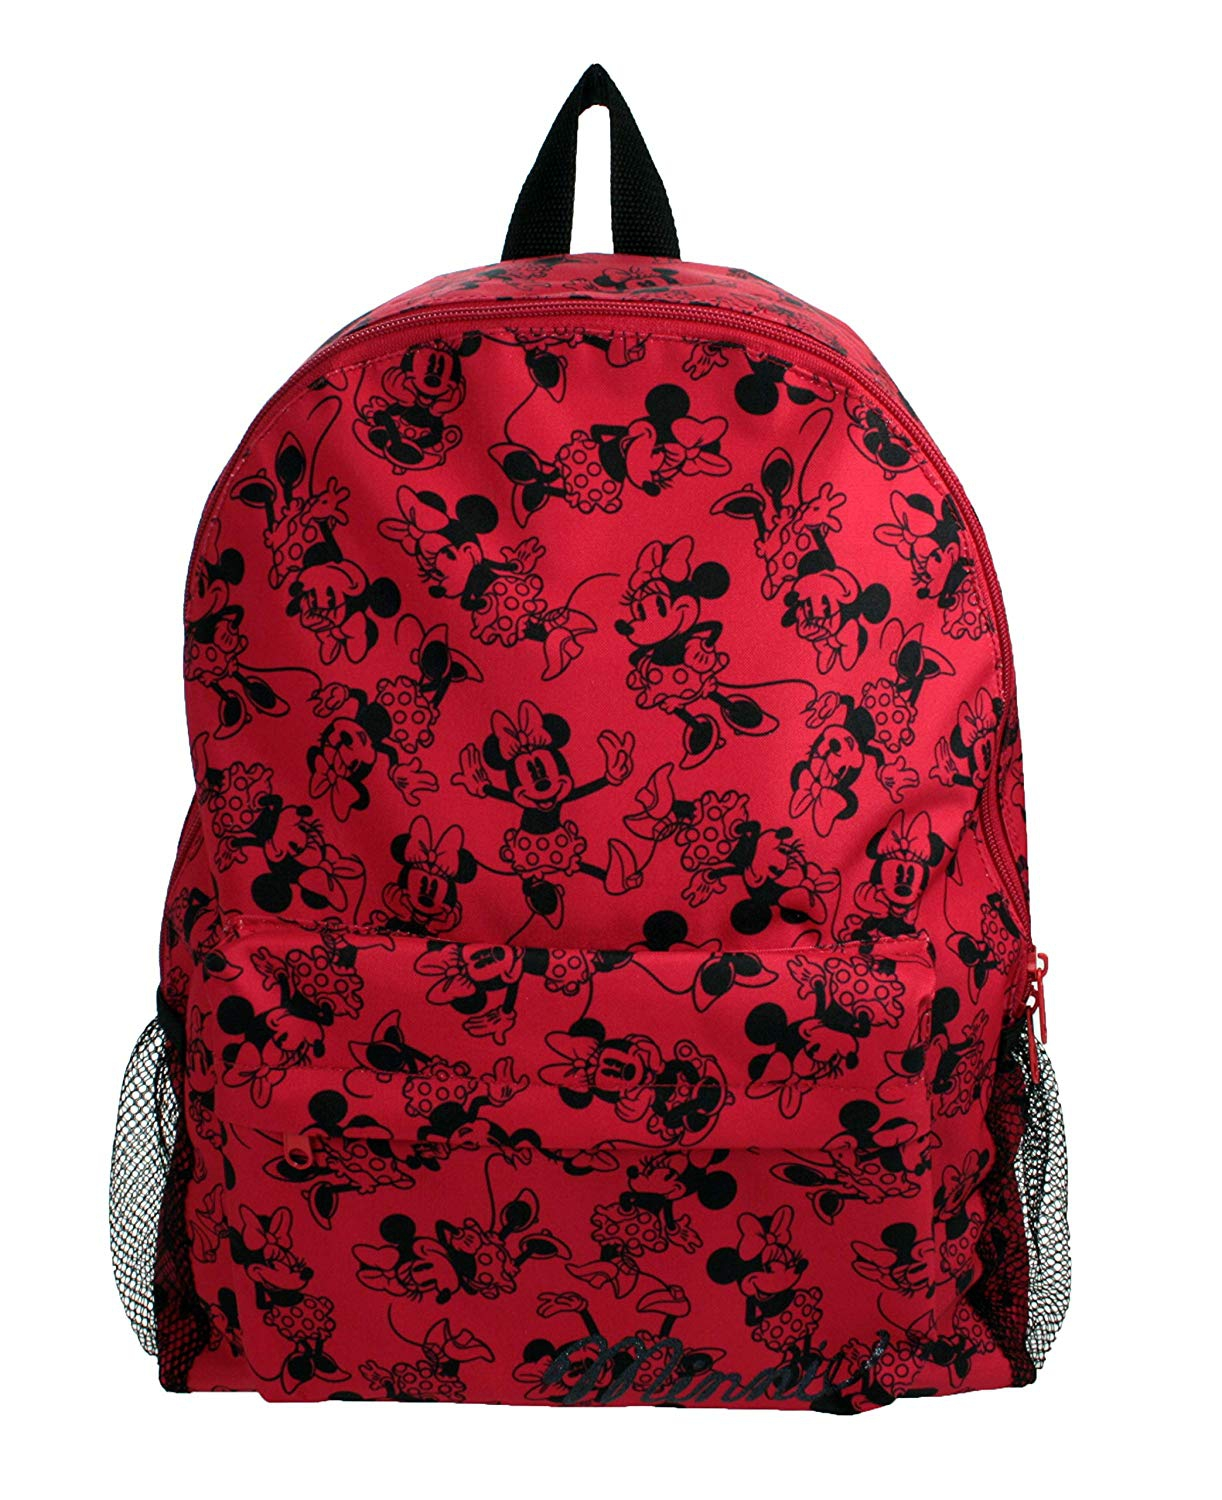 Disney Minnie Mouse Poses Large Roxy Red & Black School Bag Rucksack Backpack